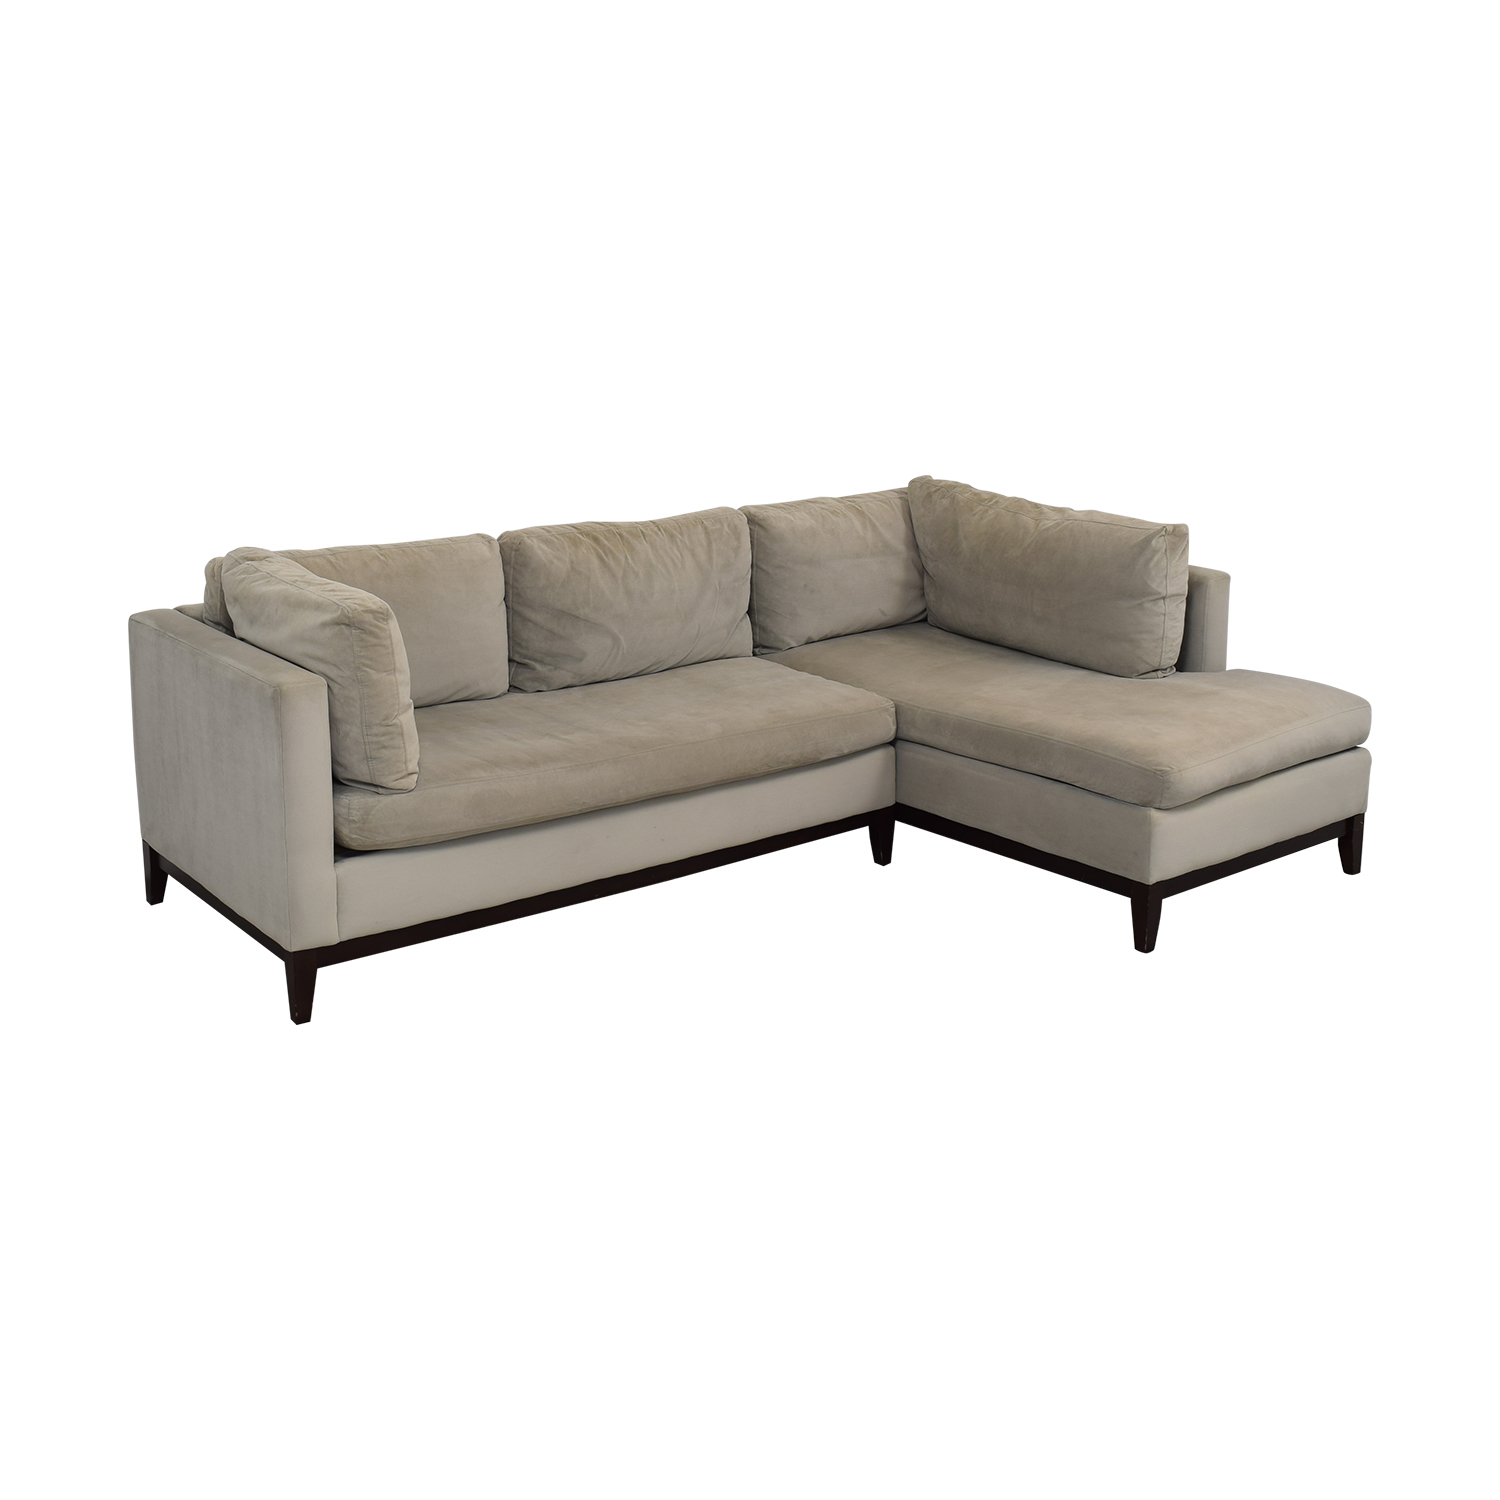 West Elm West Elm Blake Chaise Sectional Sofa second hand